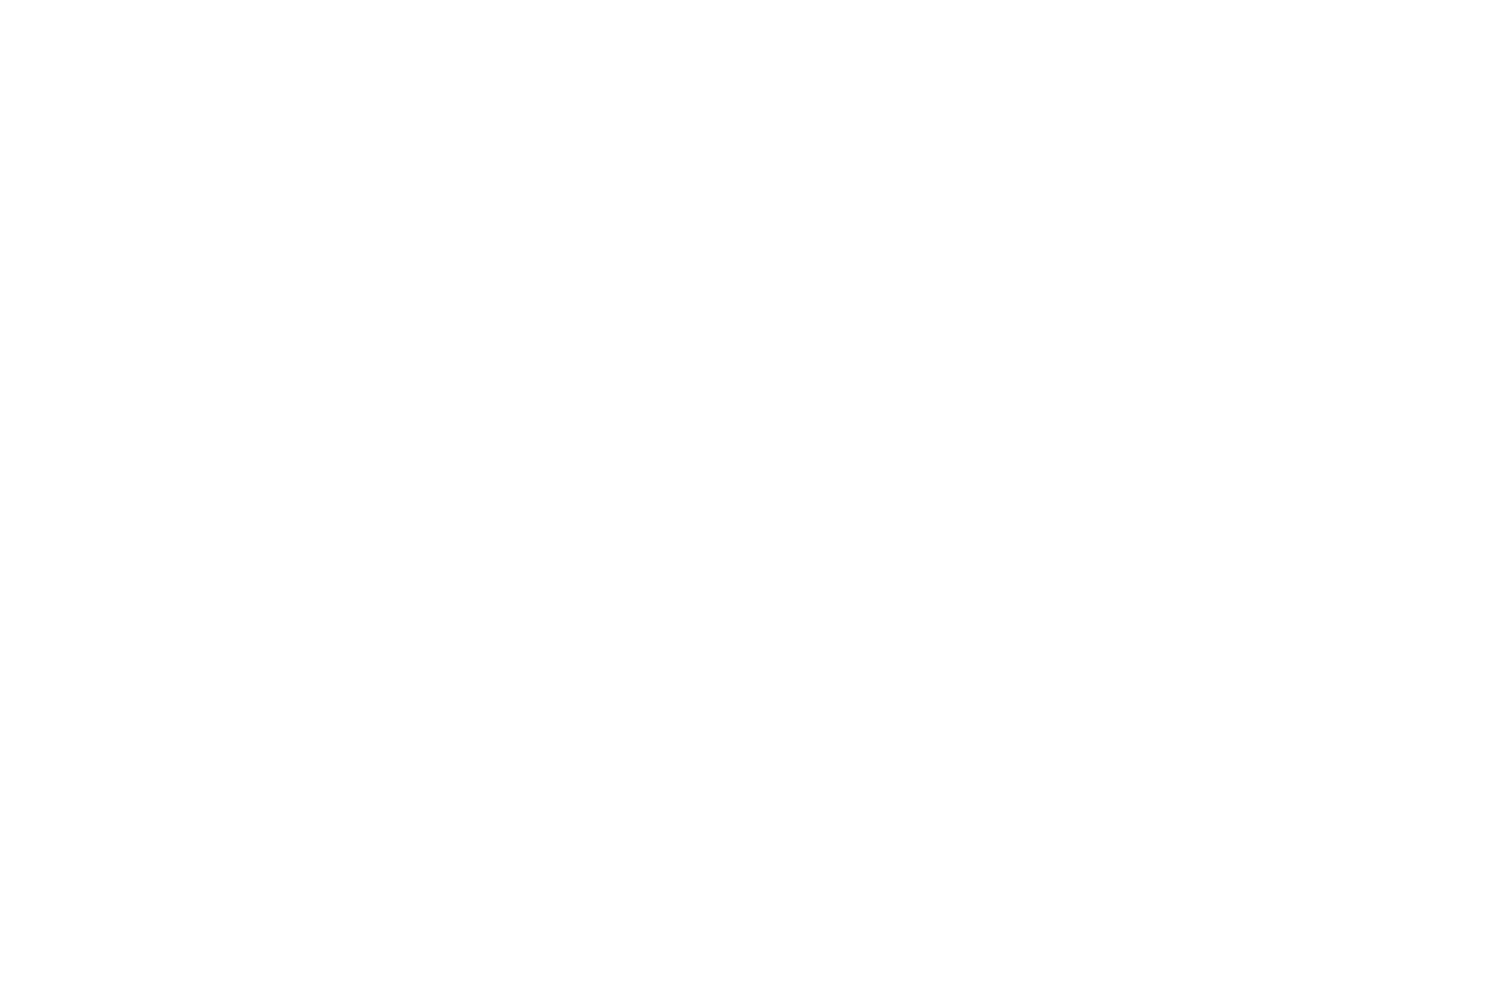 Elevation Window & Door